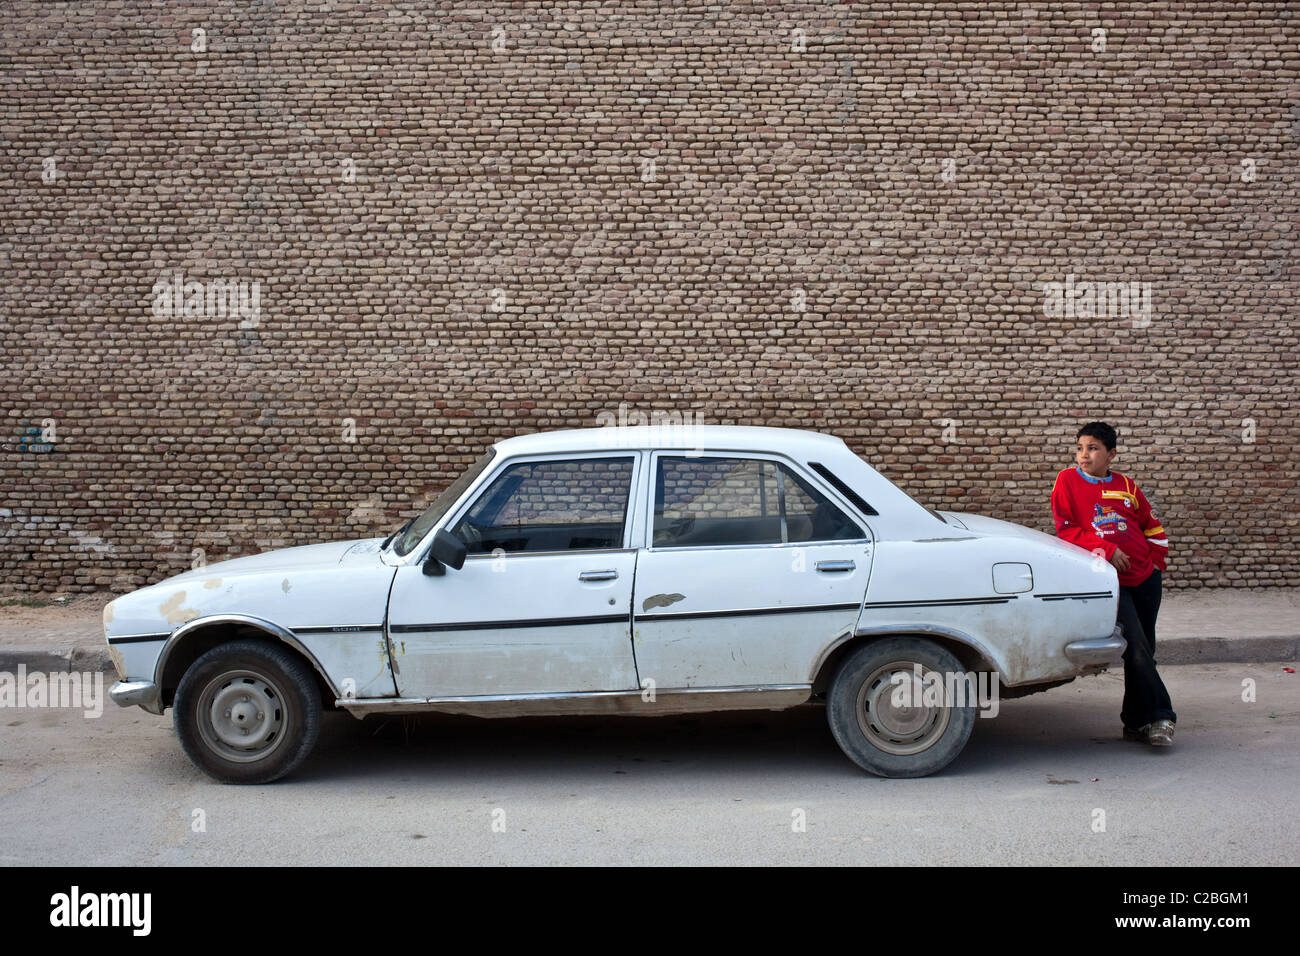 A Young Boy Stands By An Old Peugeot 504 Car In The Old City Of